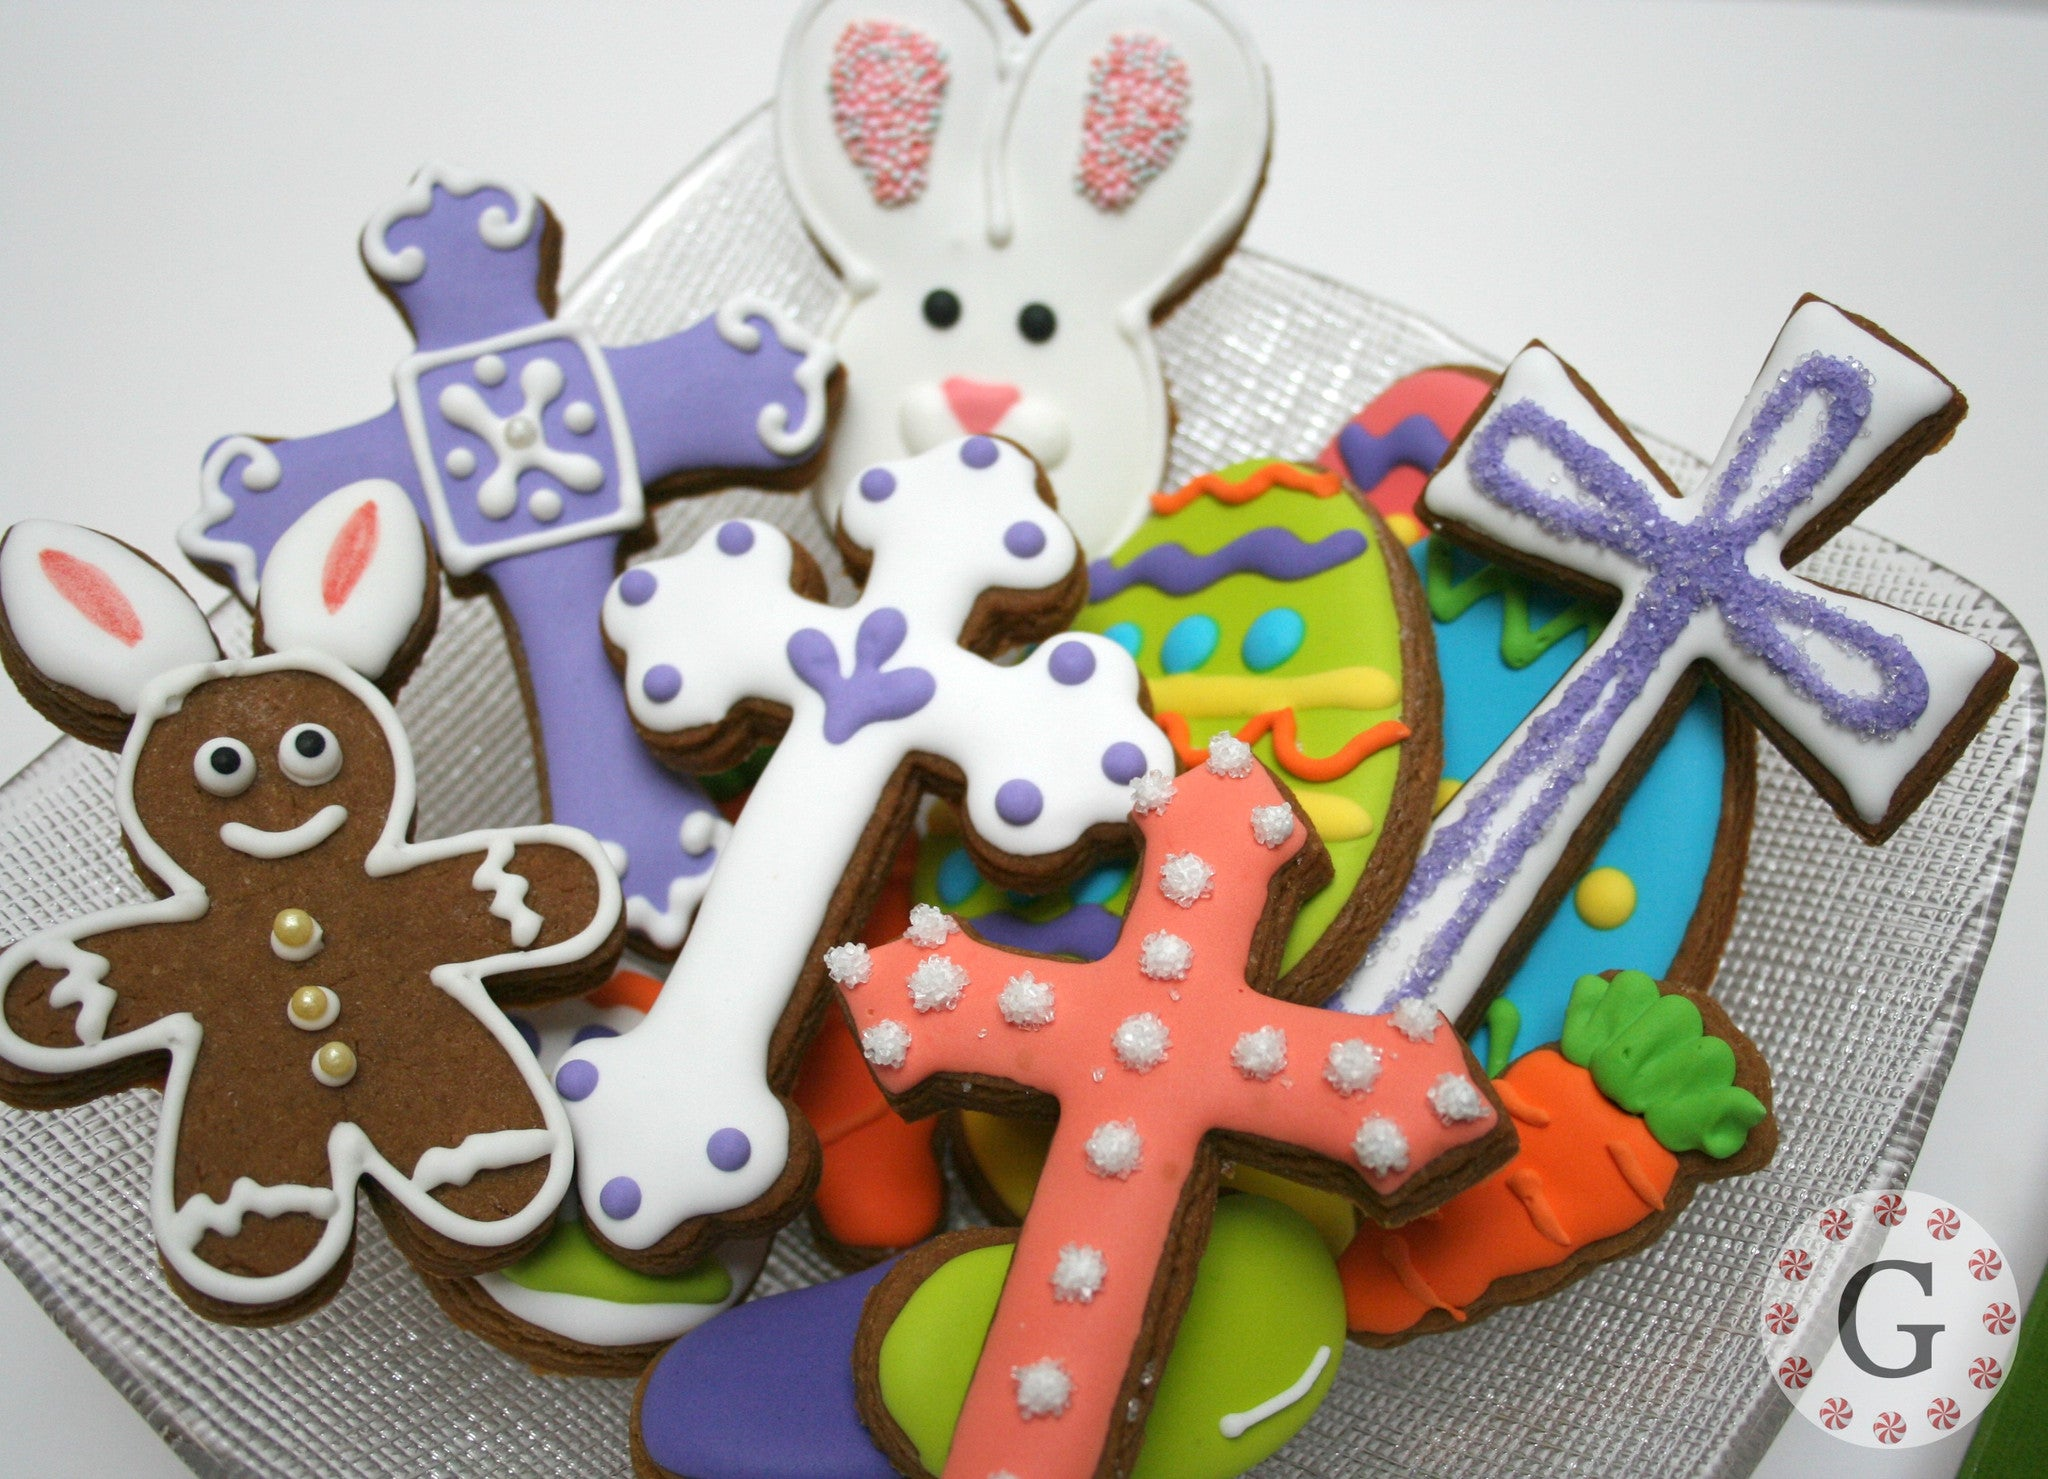 Trefoil Cross Cookie Cutter - 2 Size Options